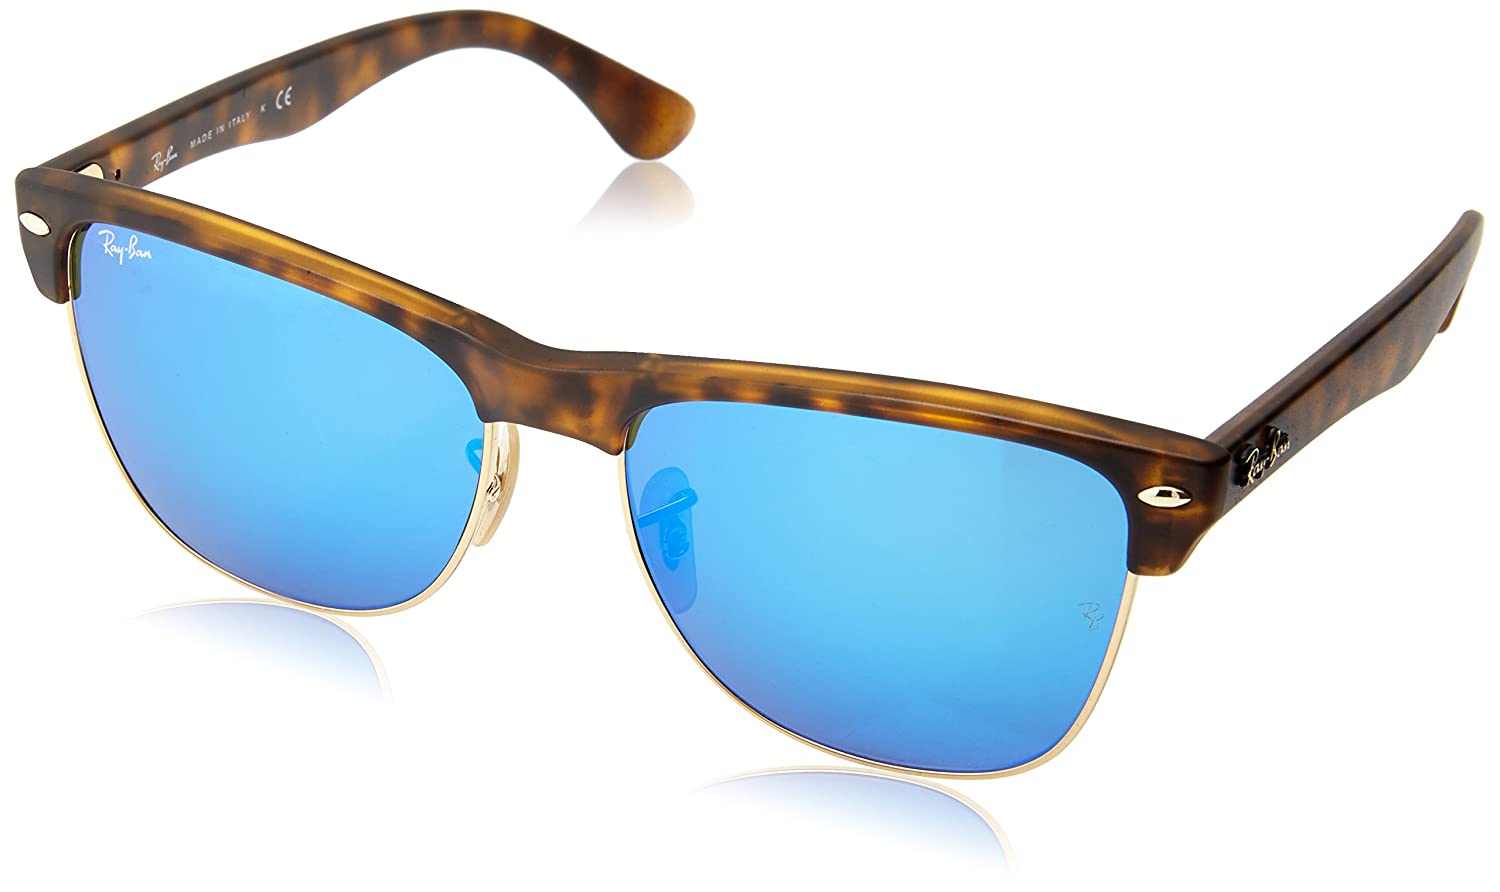 59069b8a58 Ray-Ban Men s CLUBMASTER Oversized Square